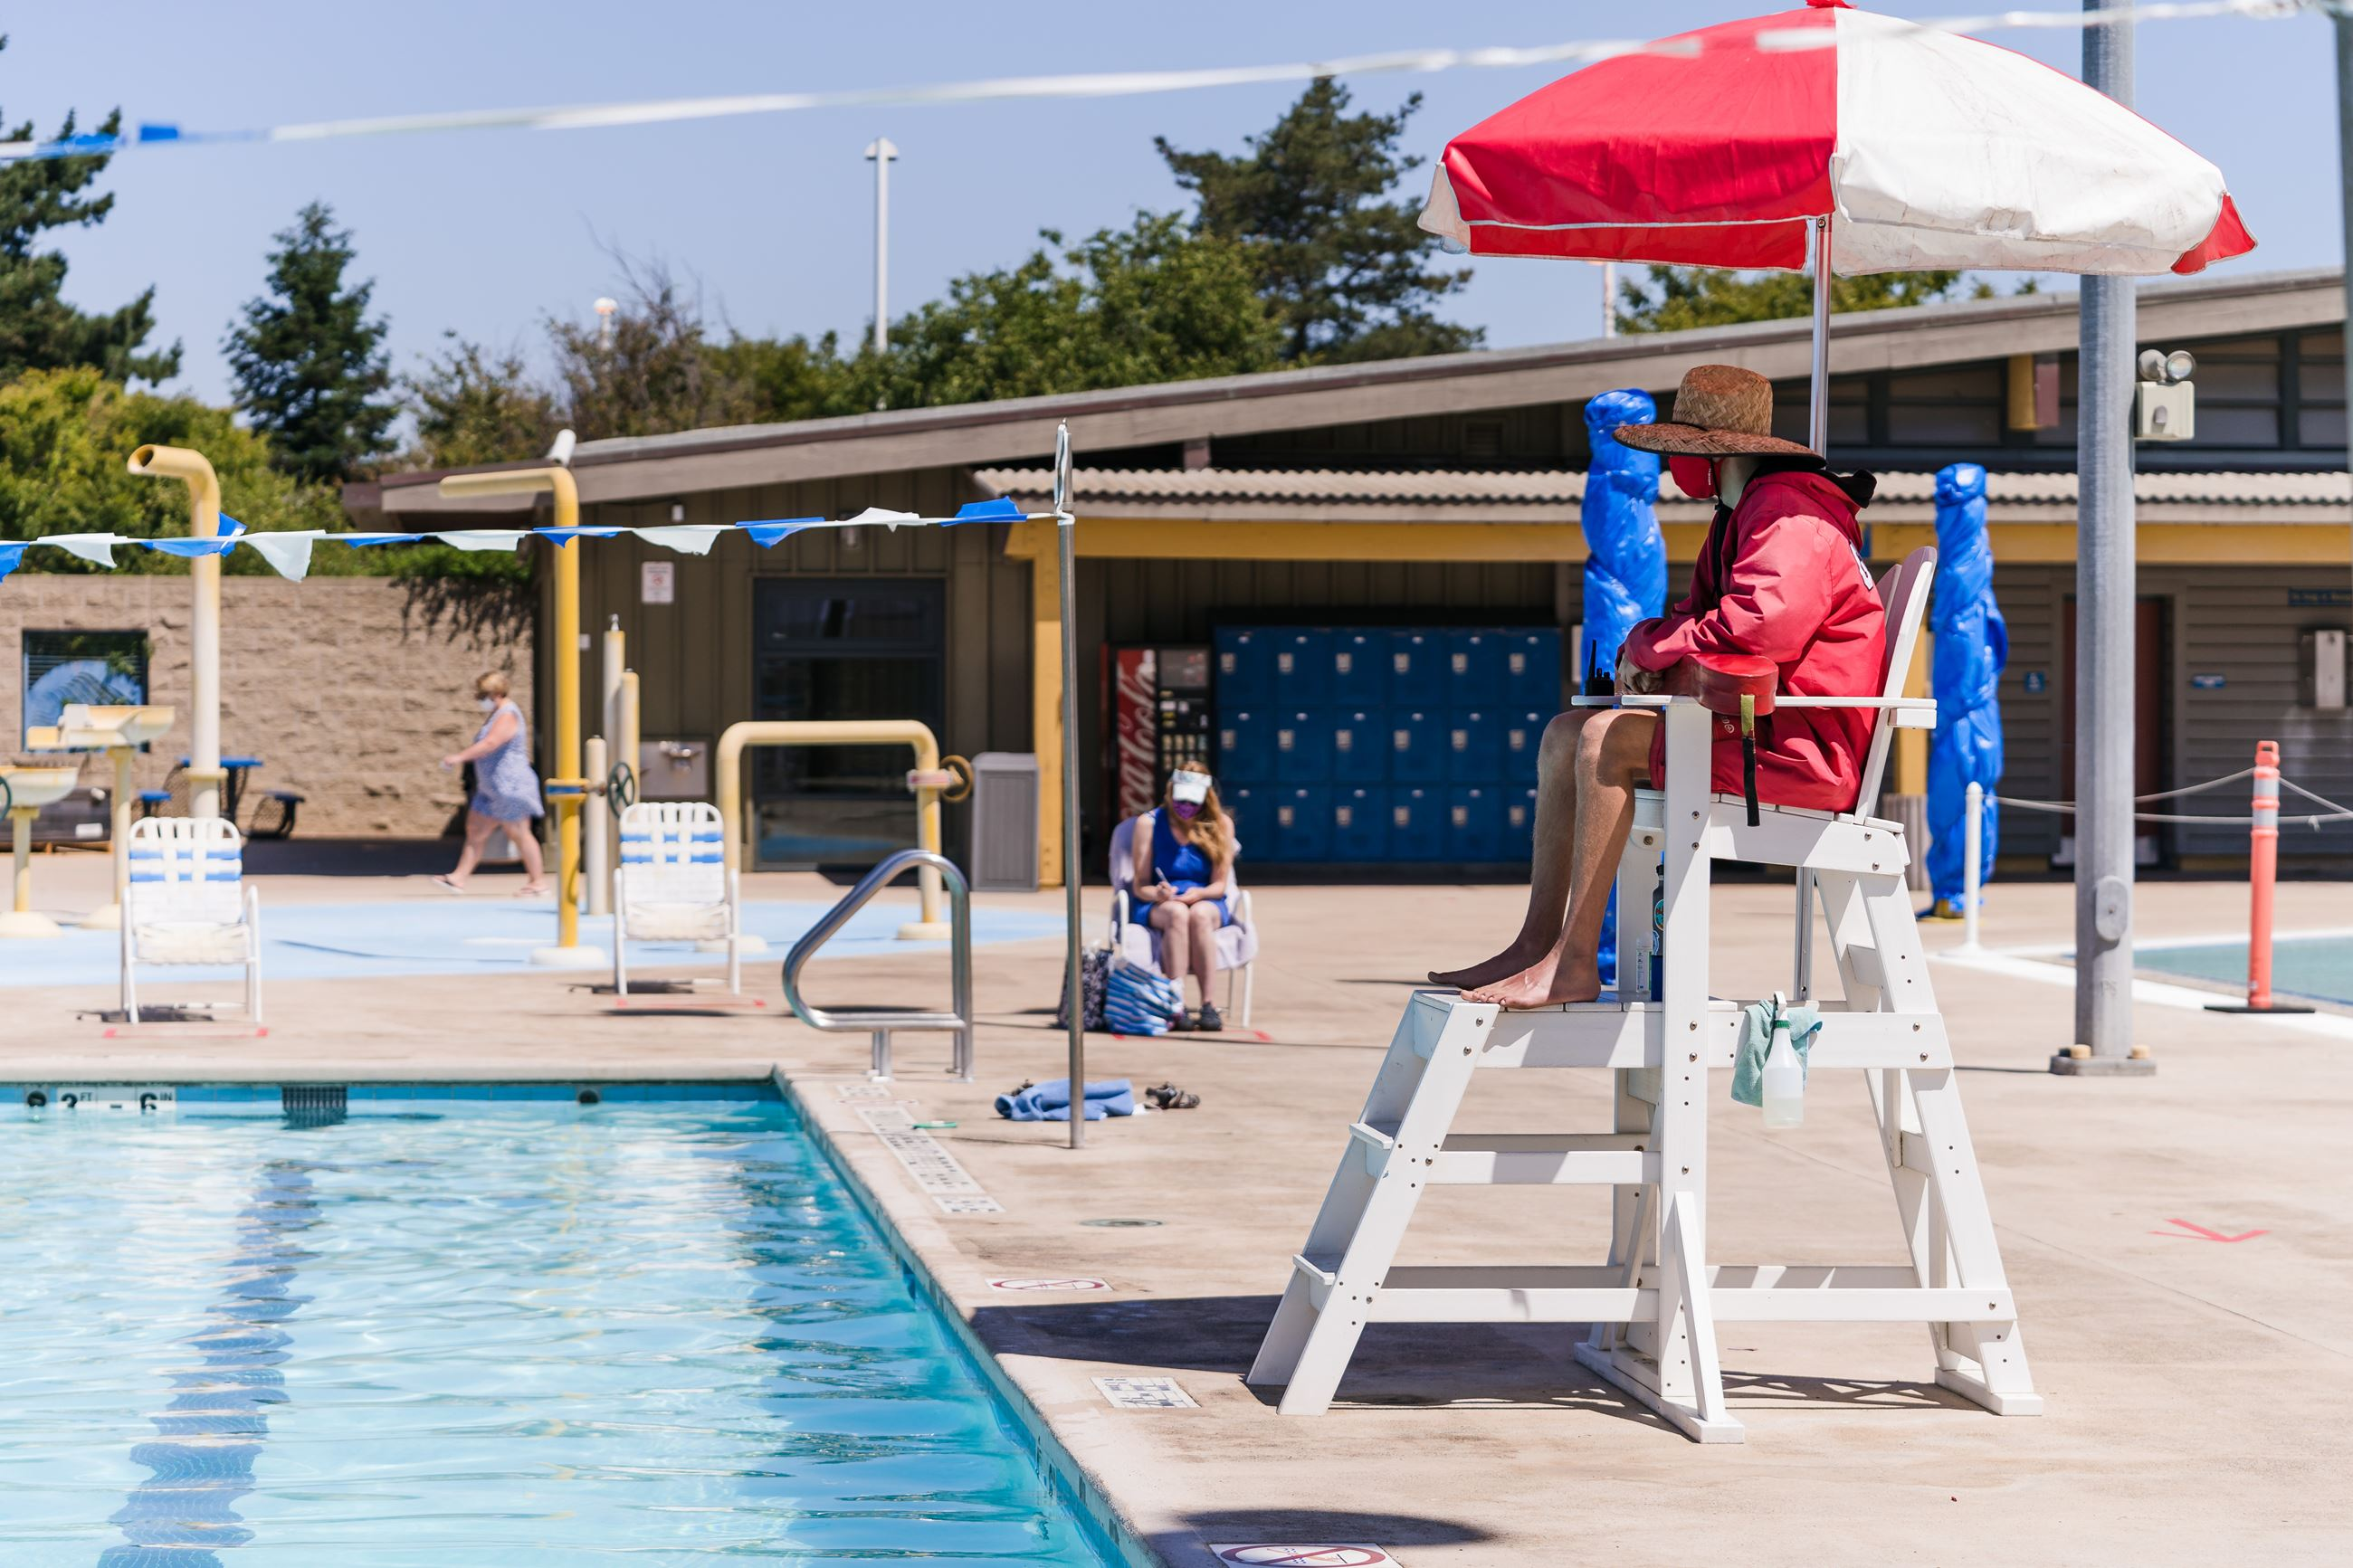 Lifeguard at Aquatics Center during COVID-19